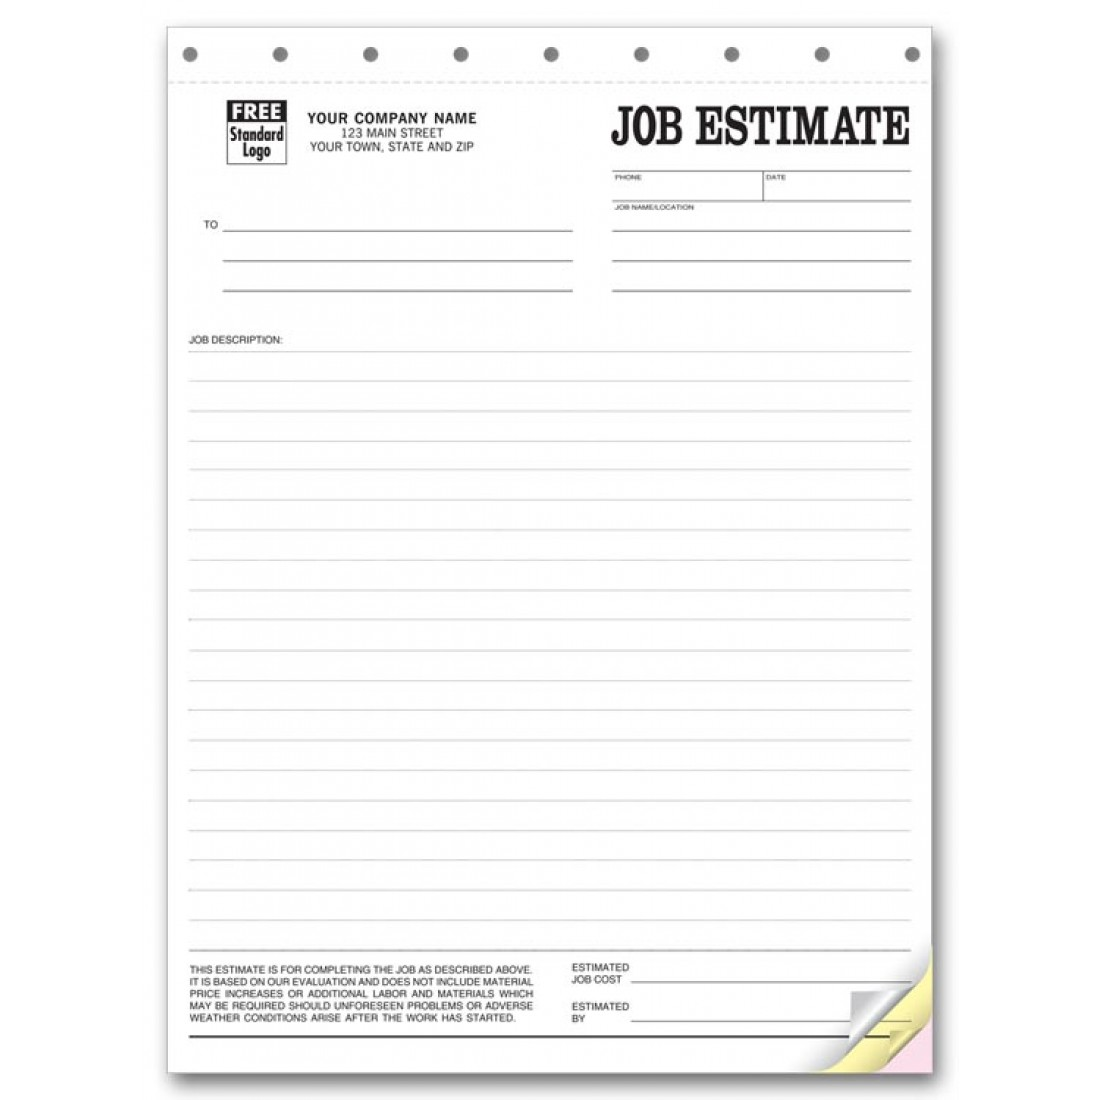 job estimate business forms 215 at print ez